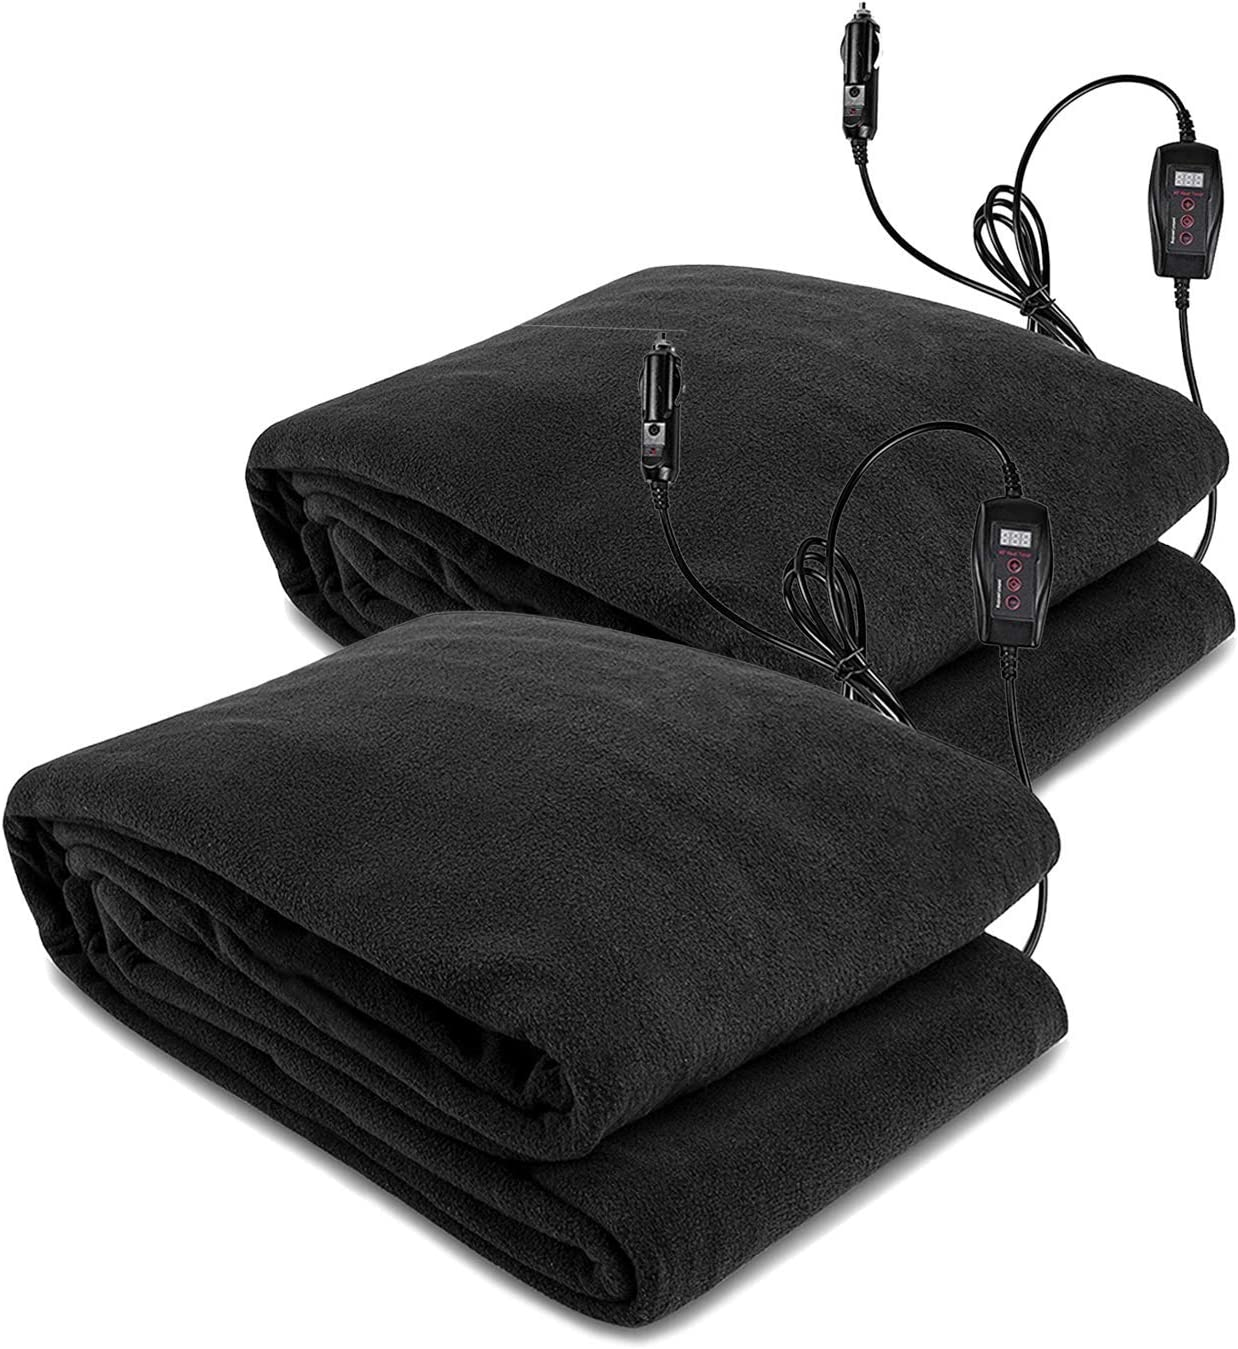 Zento Deals Electric Heated Car 12V Blanket 2 Pack - Polar Fleece Material Blanket - Cold Days and Nights Road Trip, Home and Camping, Safer Nonflammable Wiring and Fabric